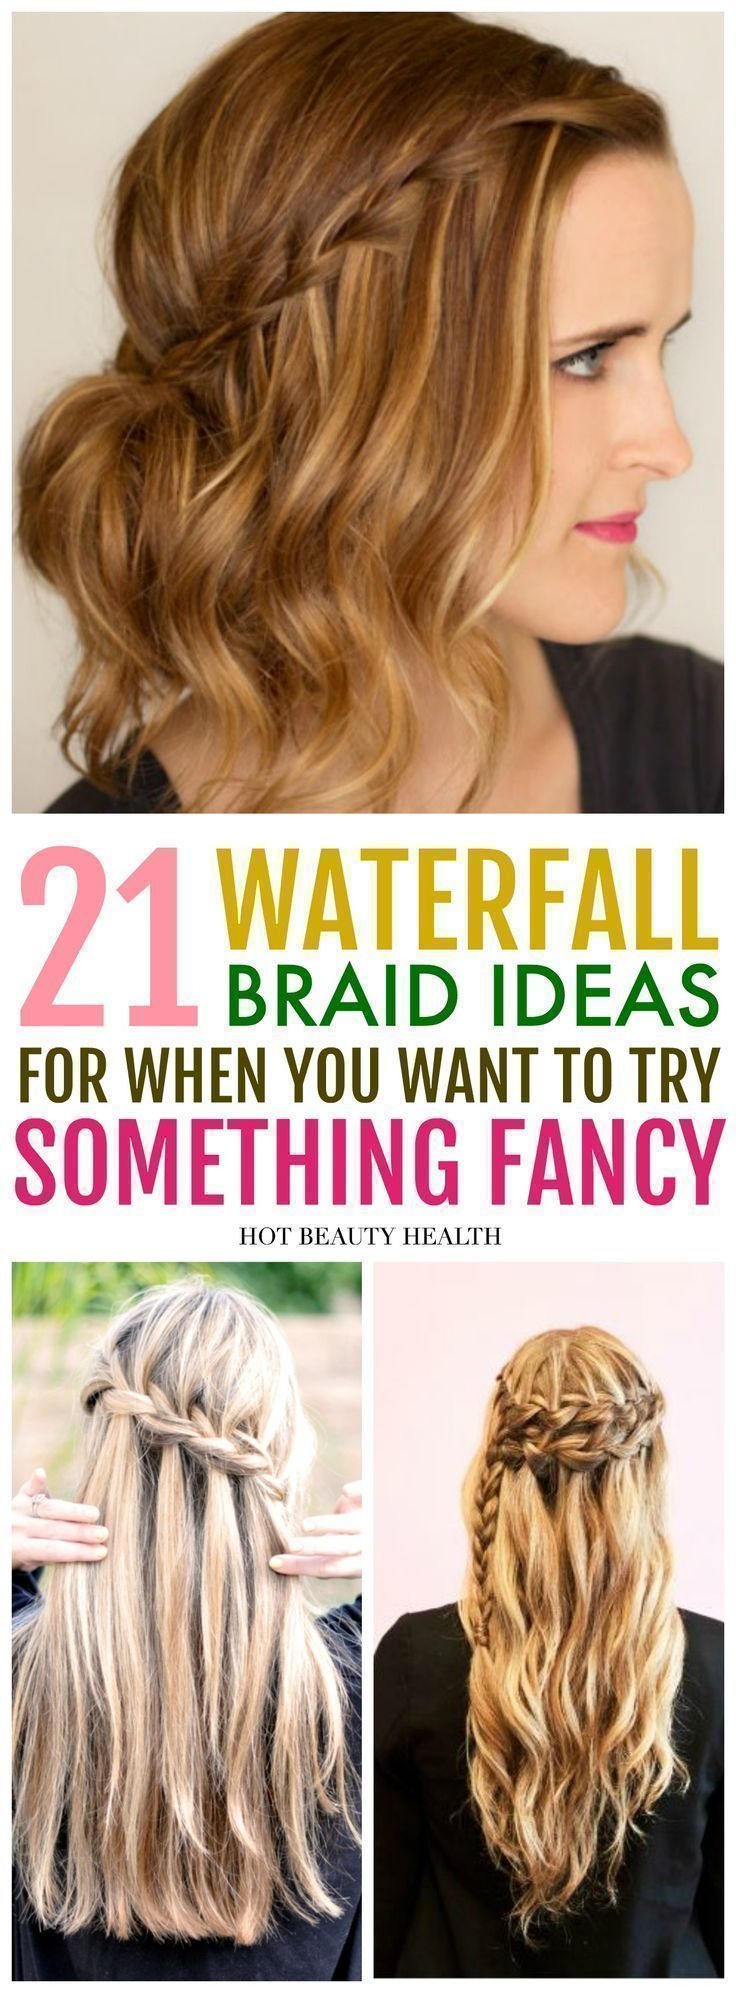 21 easy waterfall braid hairstyles you'll love. Learn how to do styles with braids, ponytail, updos, and curls. These diy hair ideas are great for bridesmaids at weddings, for prom, and even casual styles for everyday. Click pin for the list of step by step tutorials! Hot Beauty Health #waterfallbraid #hairstyles #hairtutorial #hairbraids #diyhair #diyhairstylescurls #weddinghairstylesforbridesmaids #diyhairstylesforprom